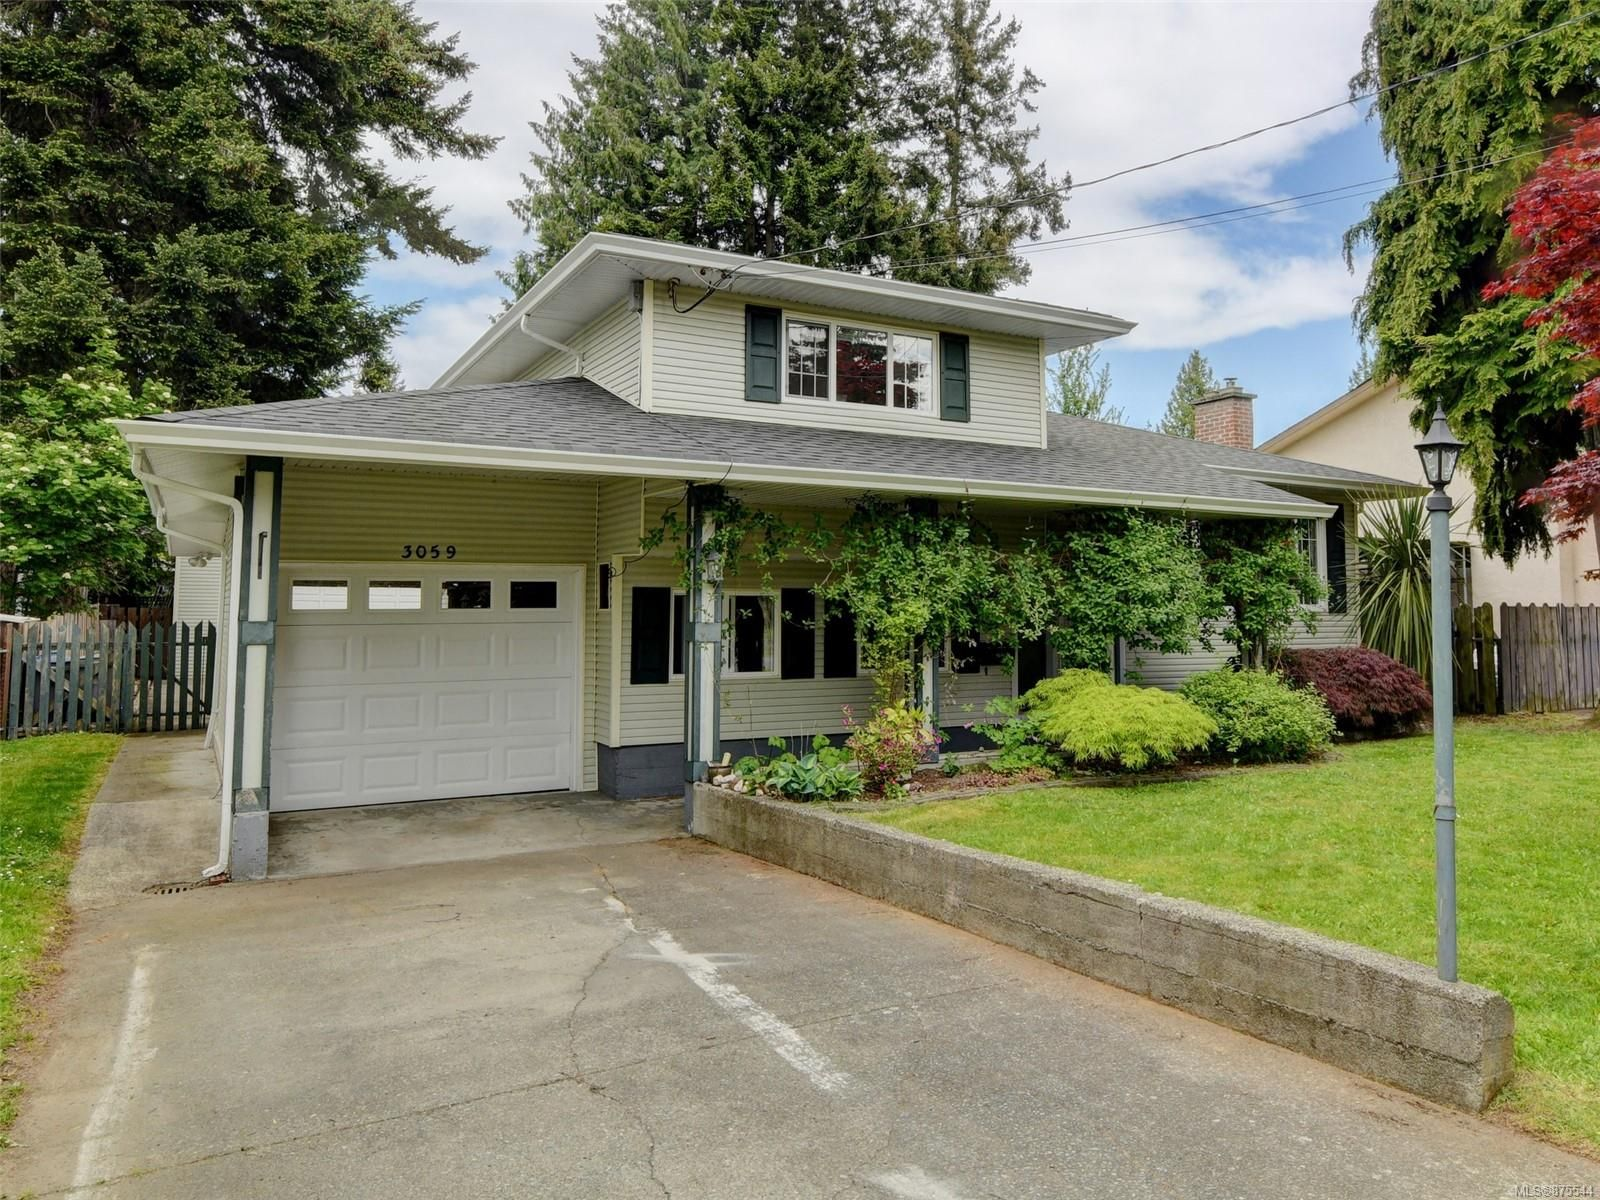 Main Photo: 3059 Jenner Rd in : Co Wishart North House for sale (Colwood)  : MLS®# 875544